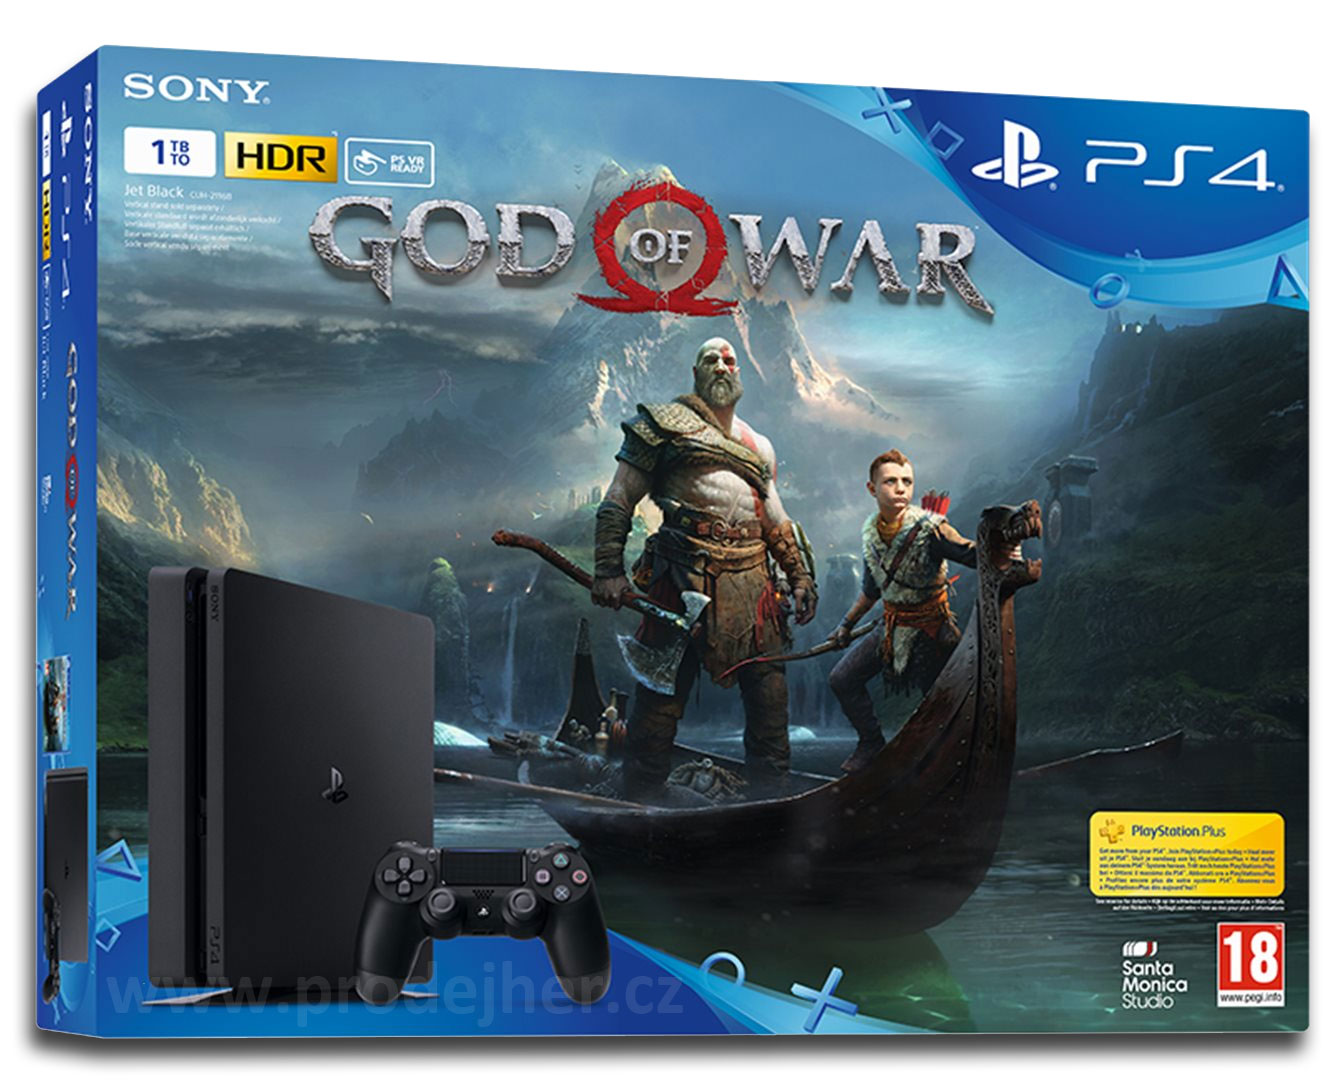 Sony PS4 Slim 1TB God of War bundle